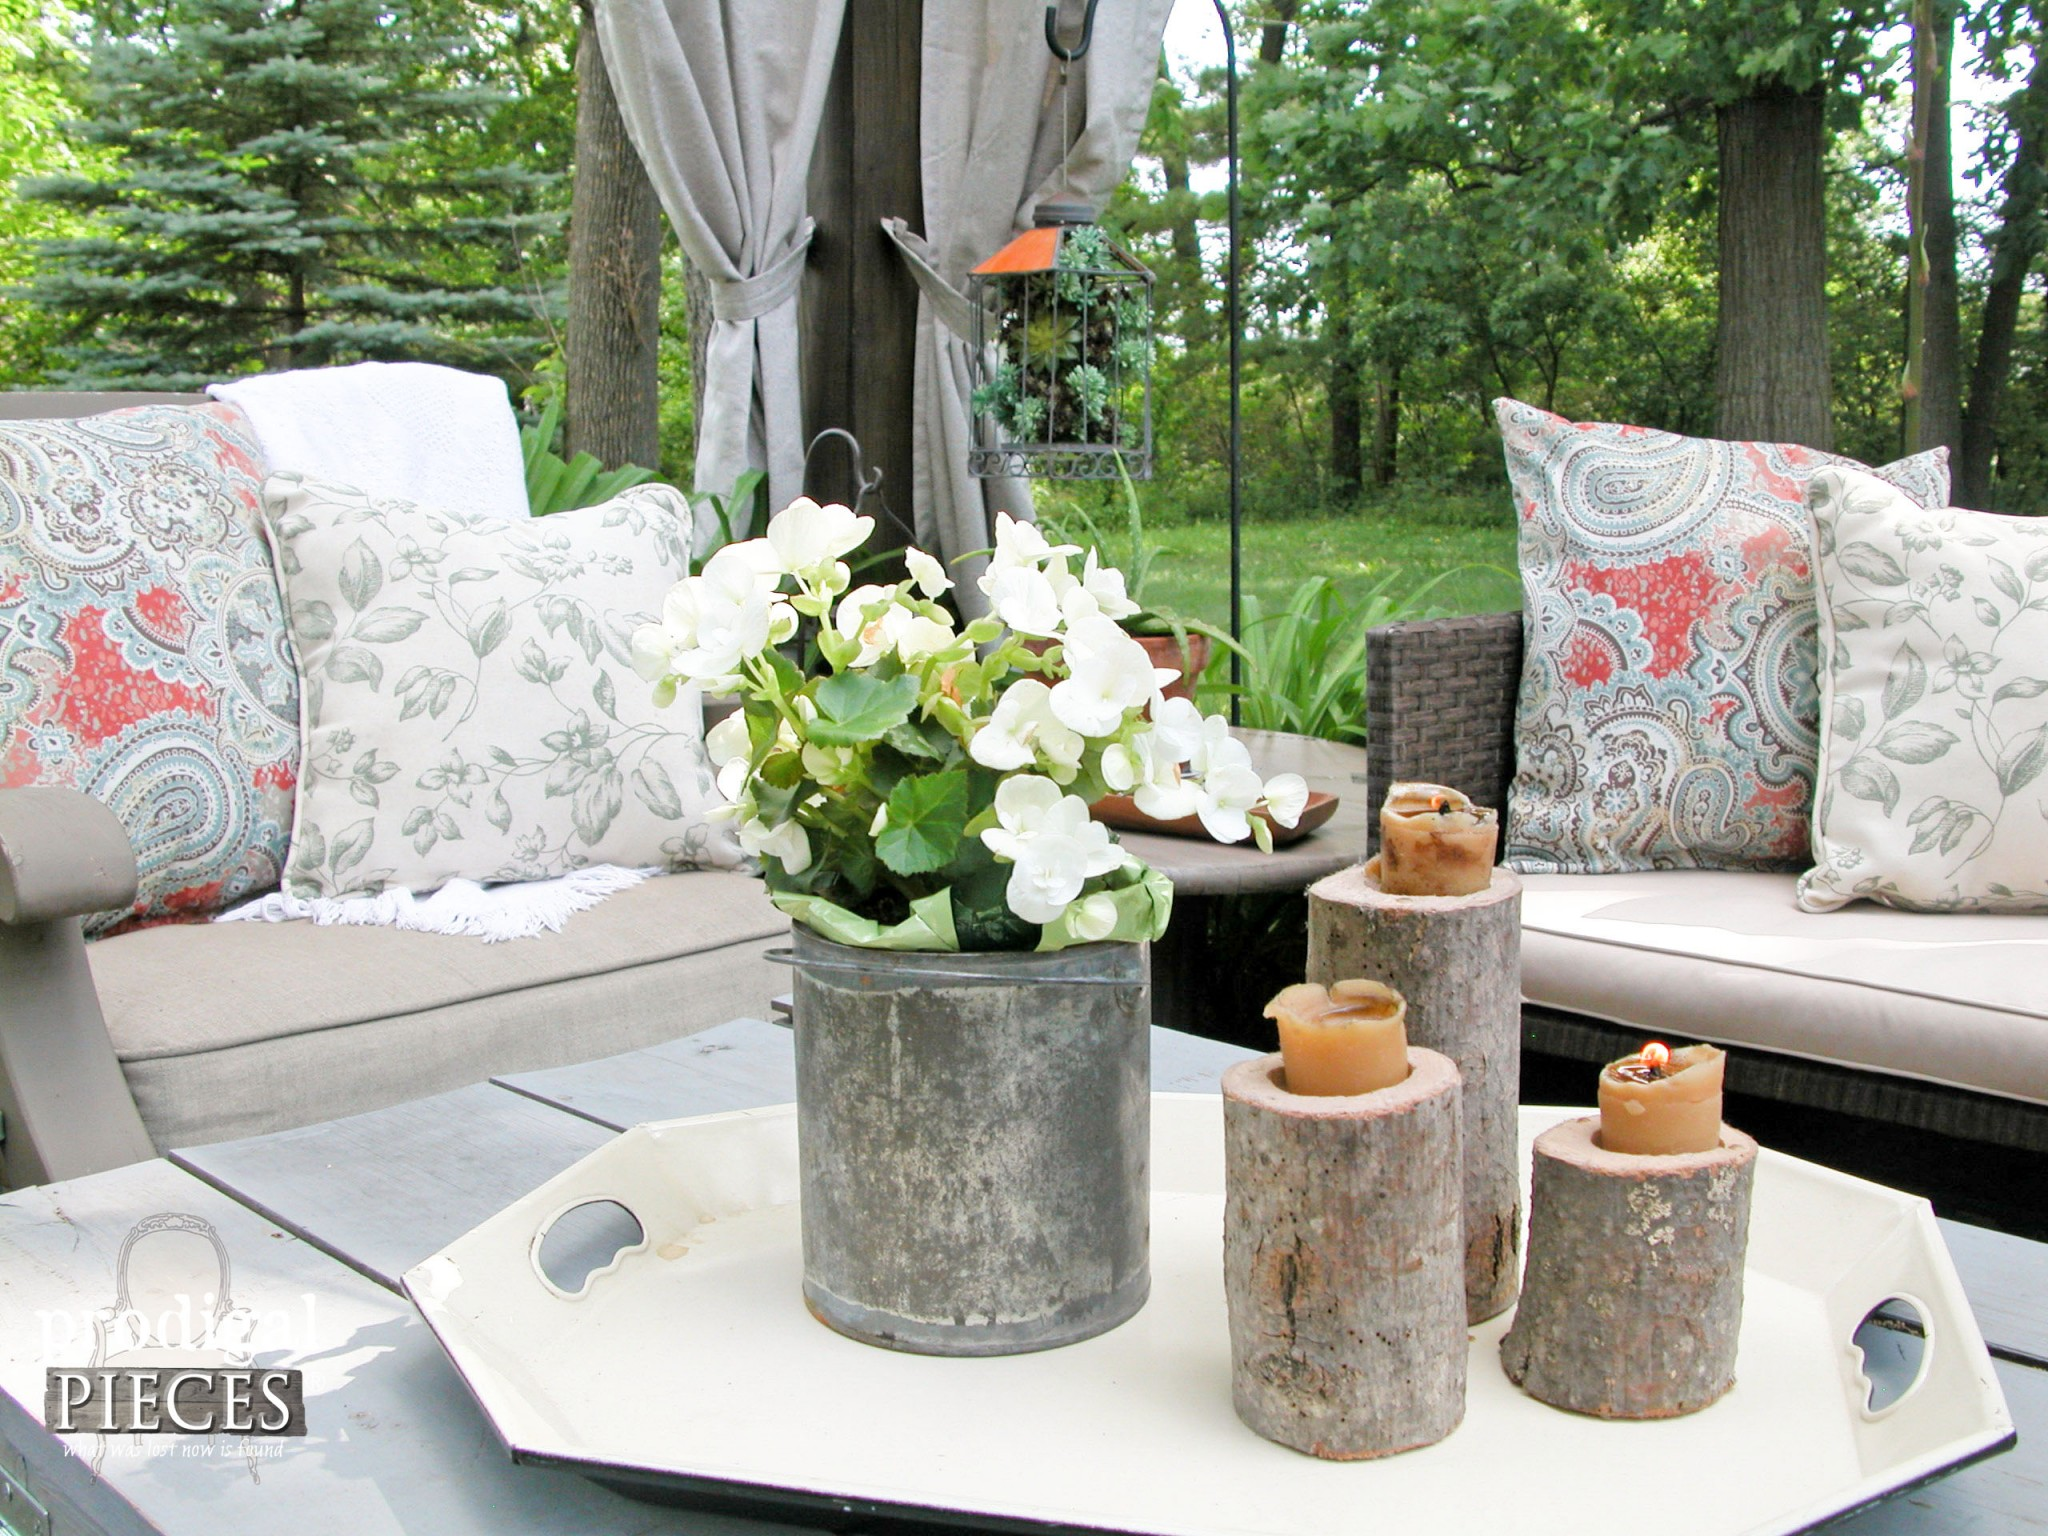 Outdoor Pillows on a Budget by Prodigal Pieces | www.prodigalpieces.com